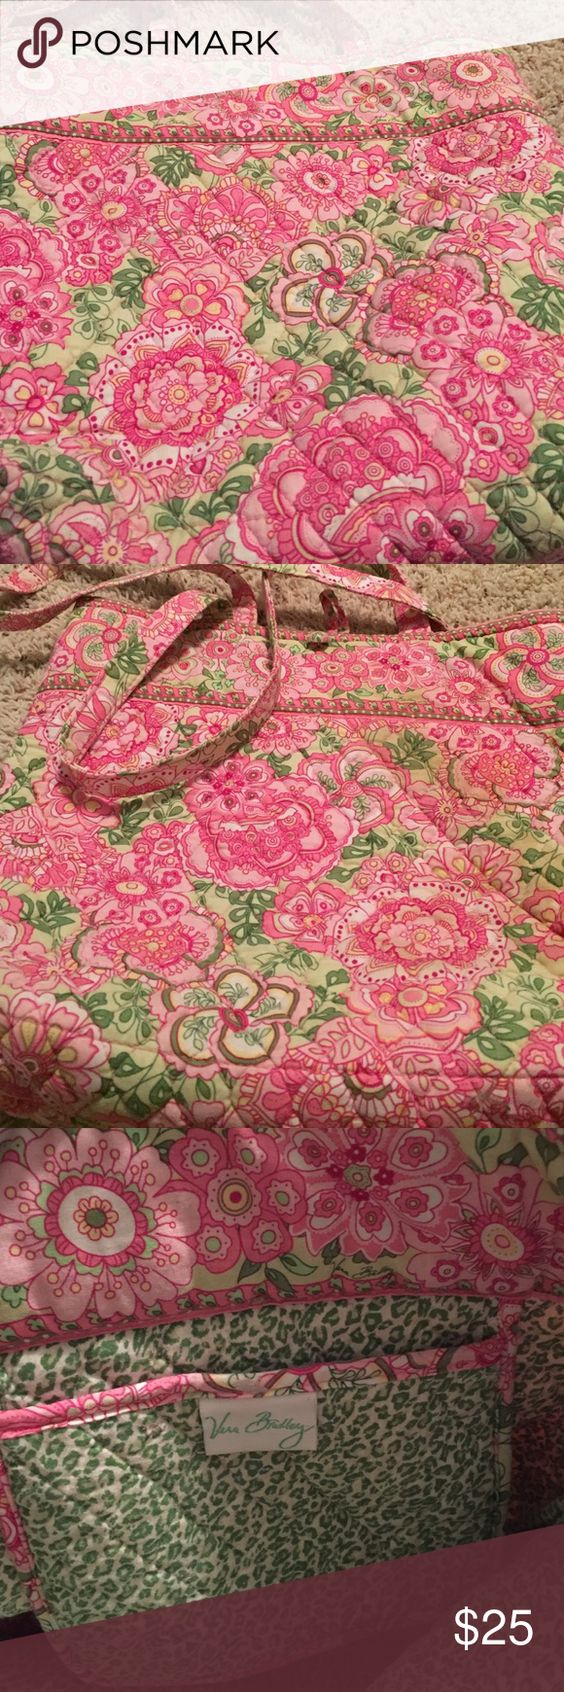 Vera Bradley tote good condition. one stain but barely noticeable Vera Bradley Bags Totes